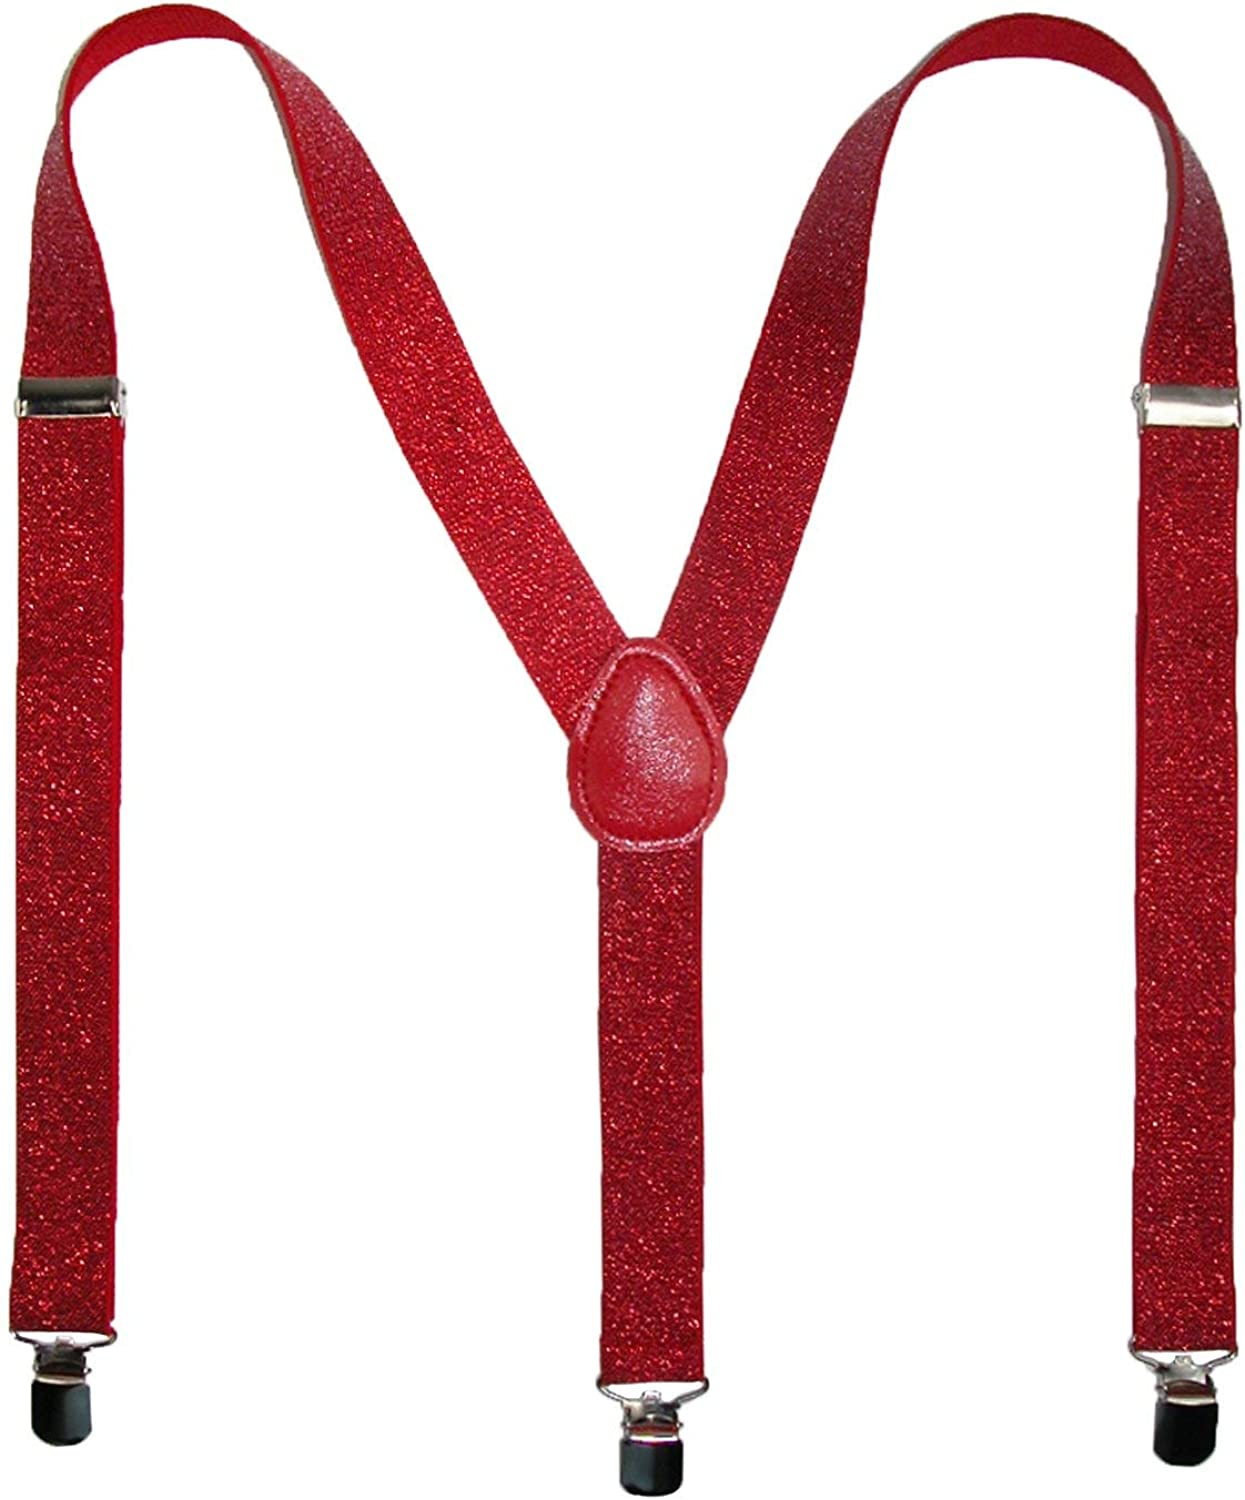 Outer Rebel Red Sparkle Glitter Suspenders